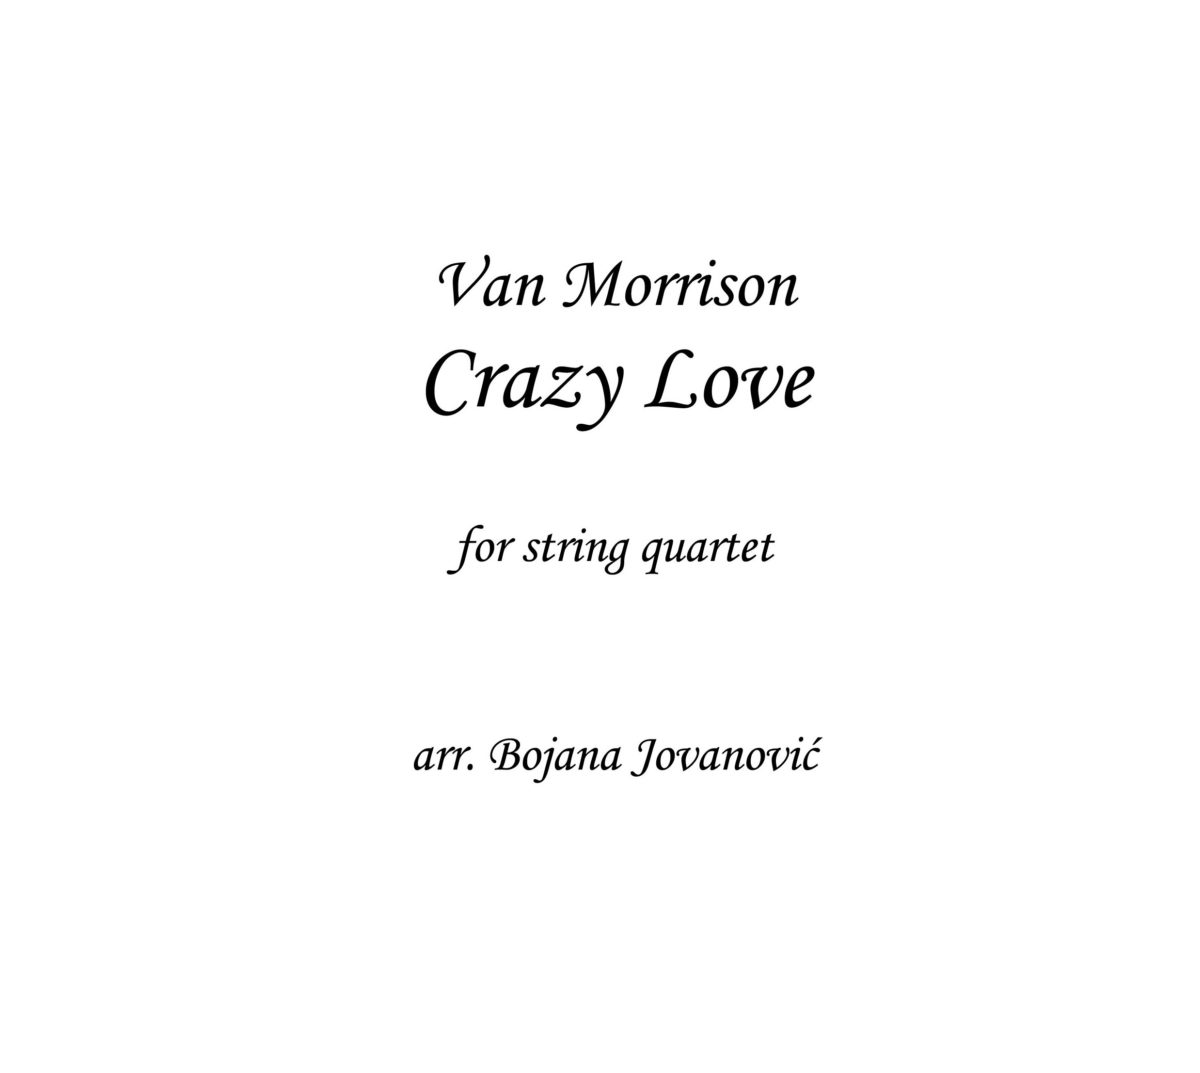 Crazy Love - String quartet (Van Morrison) - Sheet Music